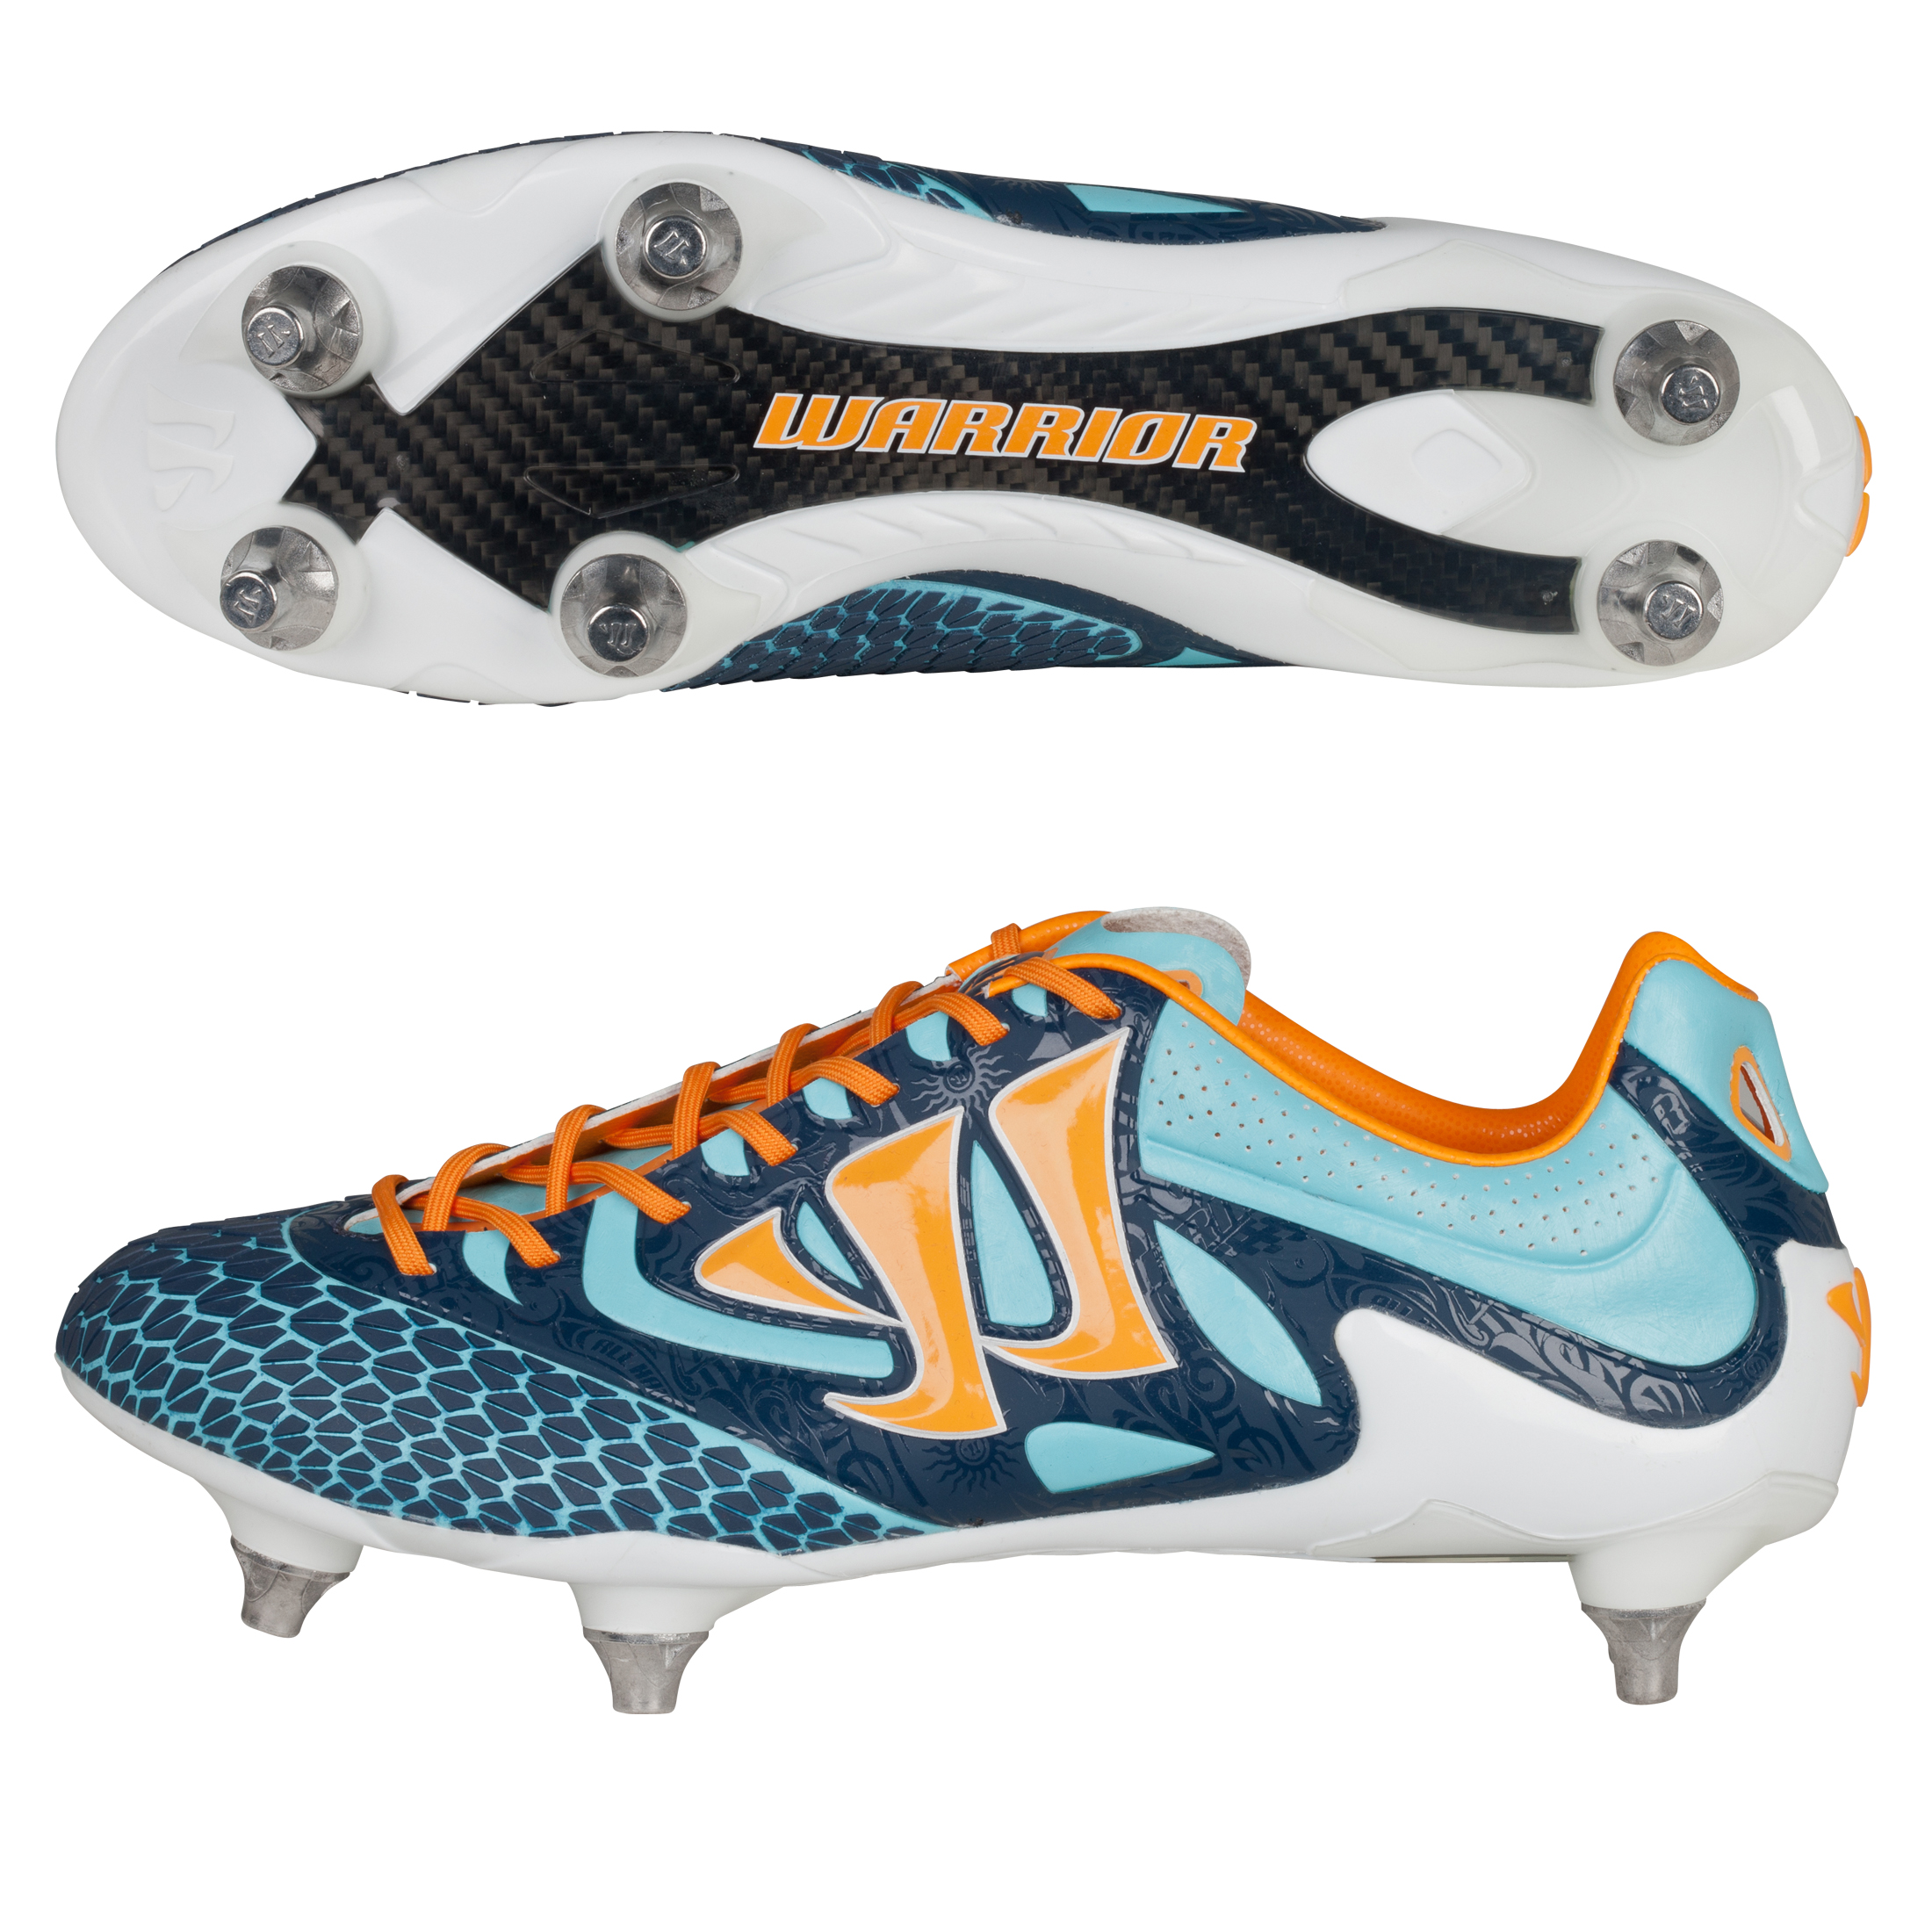 Warrior Sports Skreamer S-Lite Soft Ground Football Boots - Blue Radiance/Bright Marigold/Insignia Blue